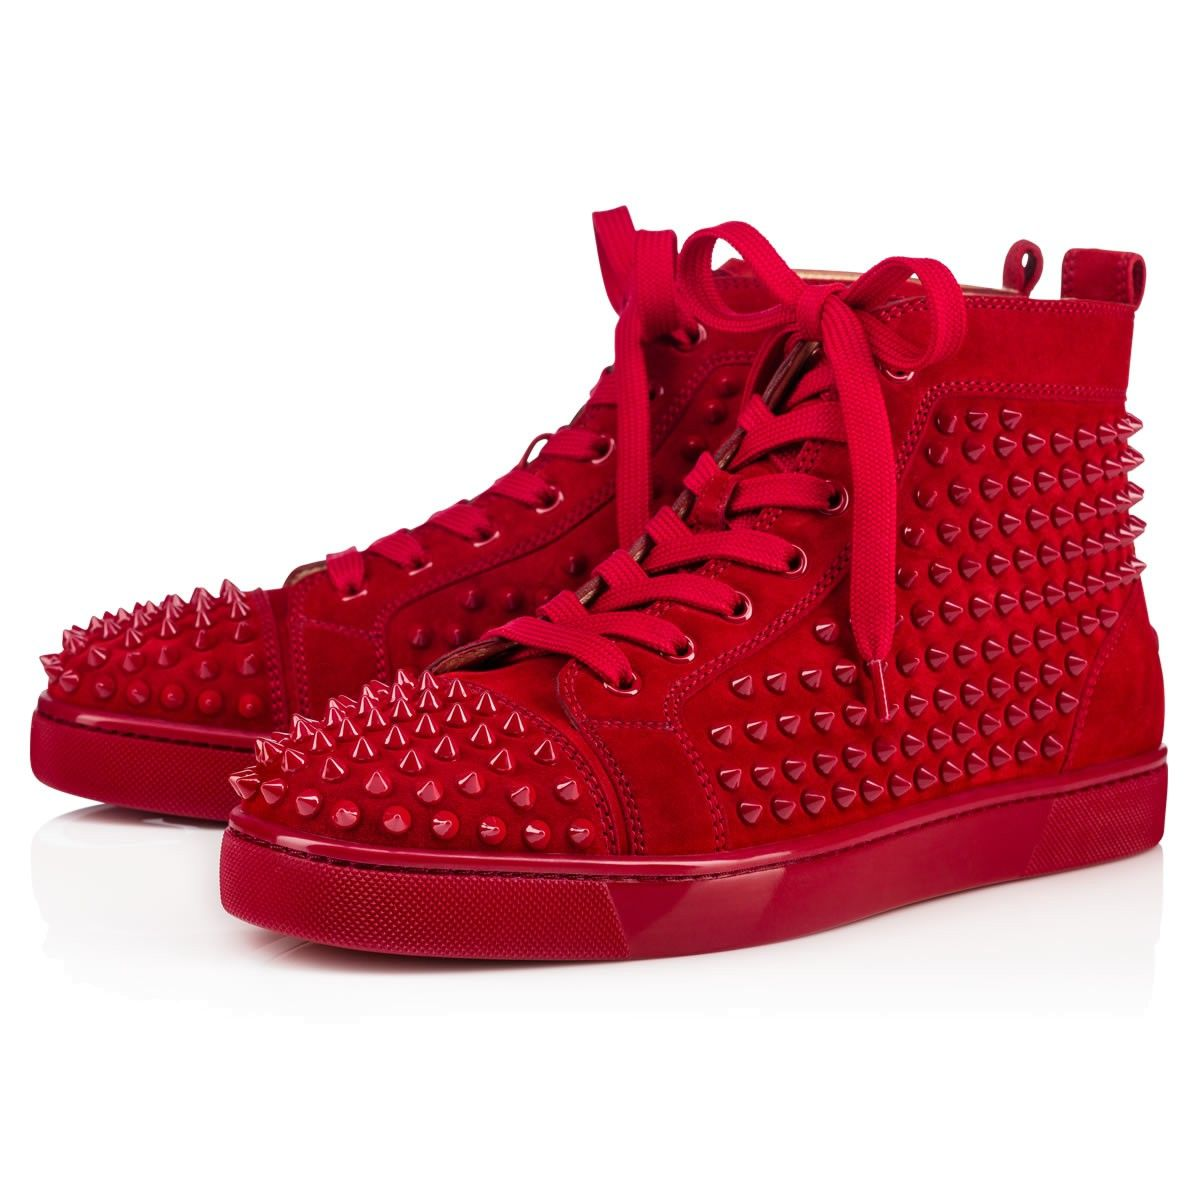 louis vuitton mens spiked shoes